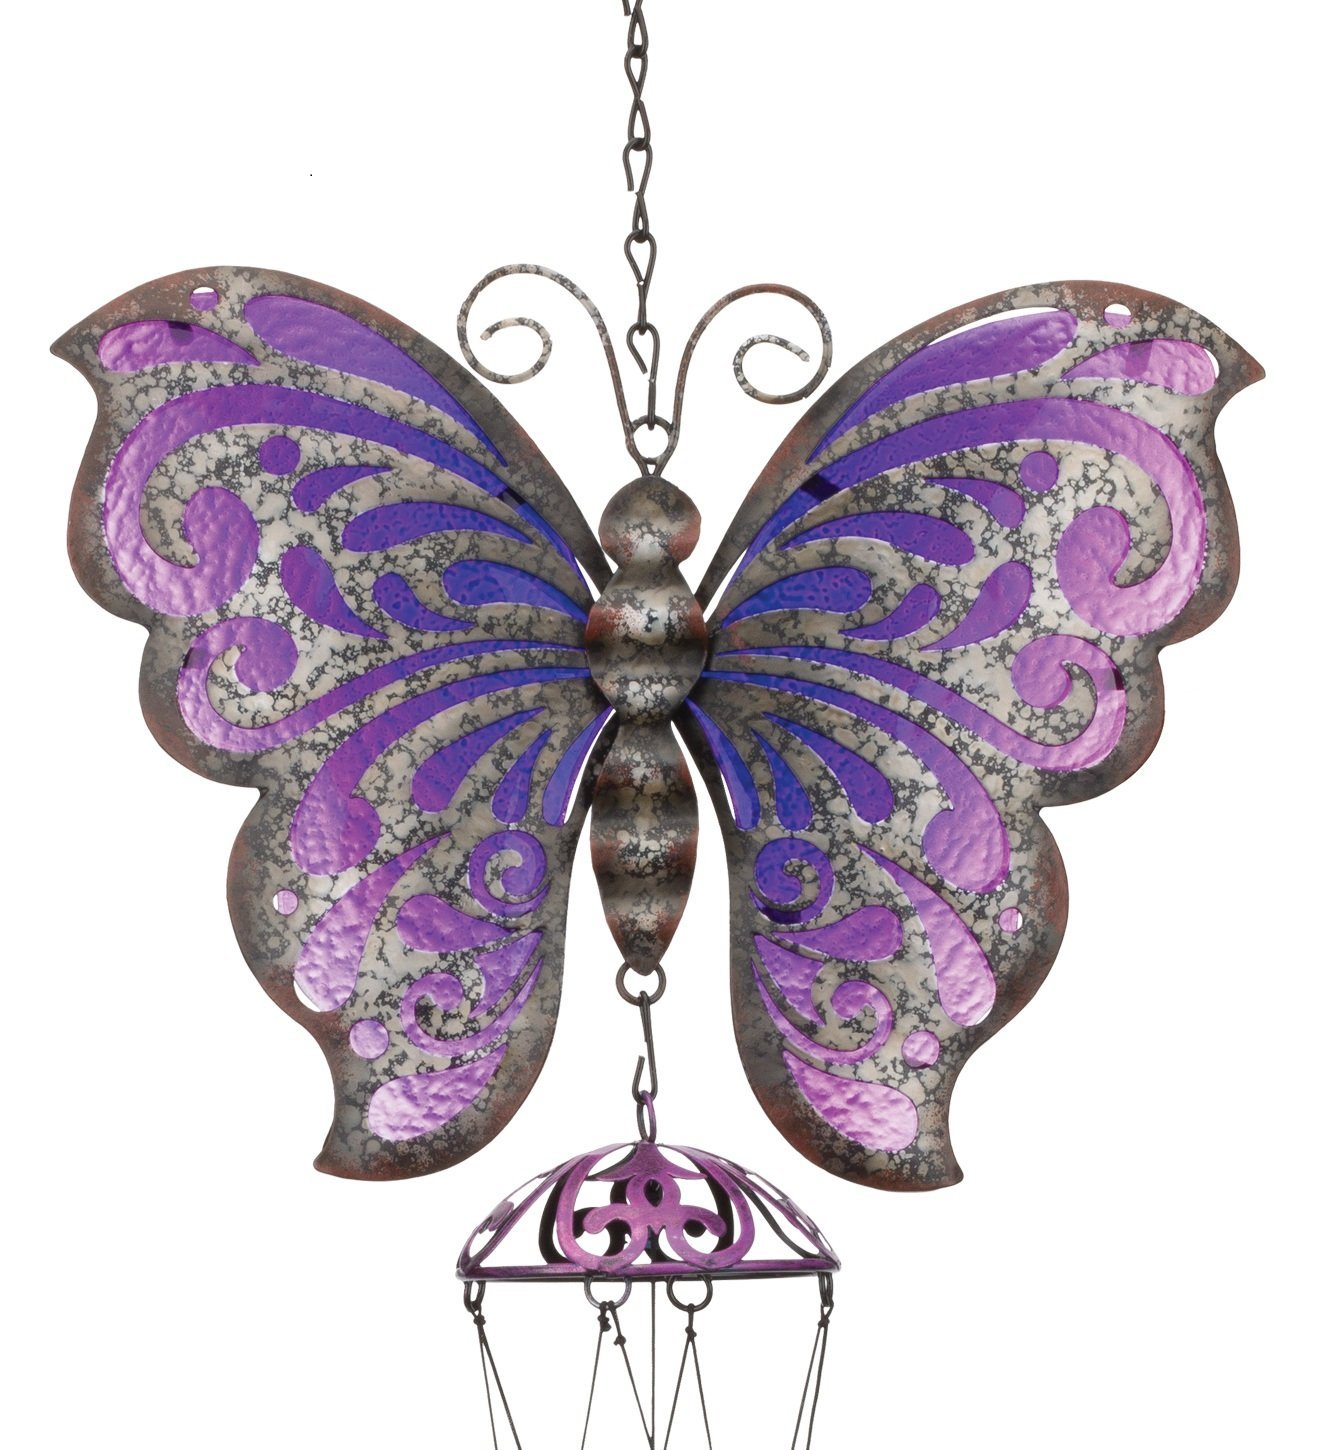 Regal Art & Gift Garden Rustic Butterfly 9.5 Inches X3 Inches X33 Inches Metal Glass Chime -Wind Noisemakers